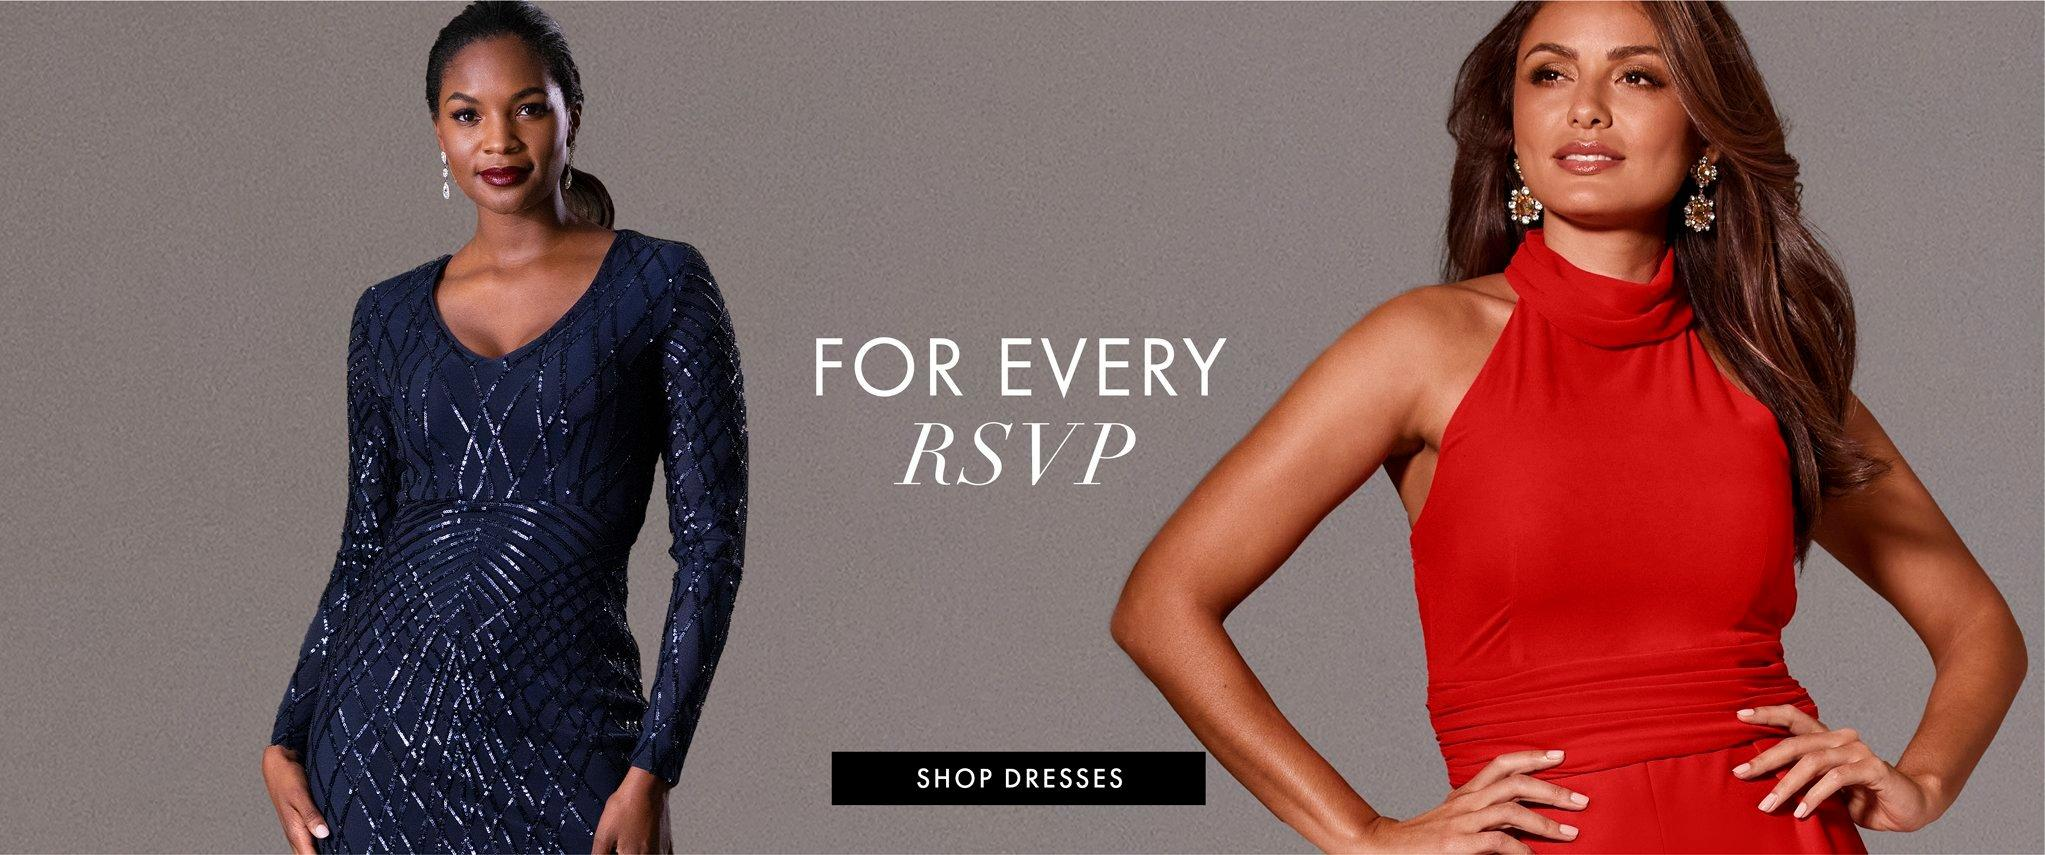 left model wearing a navy sequin long-sleeve dress. right model wearing a red mock-neck sleeveless jumpsuit and jewel drop earrings. text: for every rsvp. shop dresses.